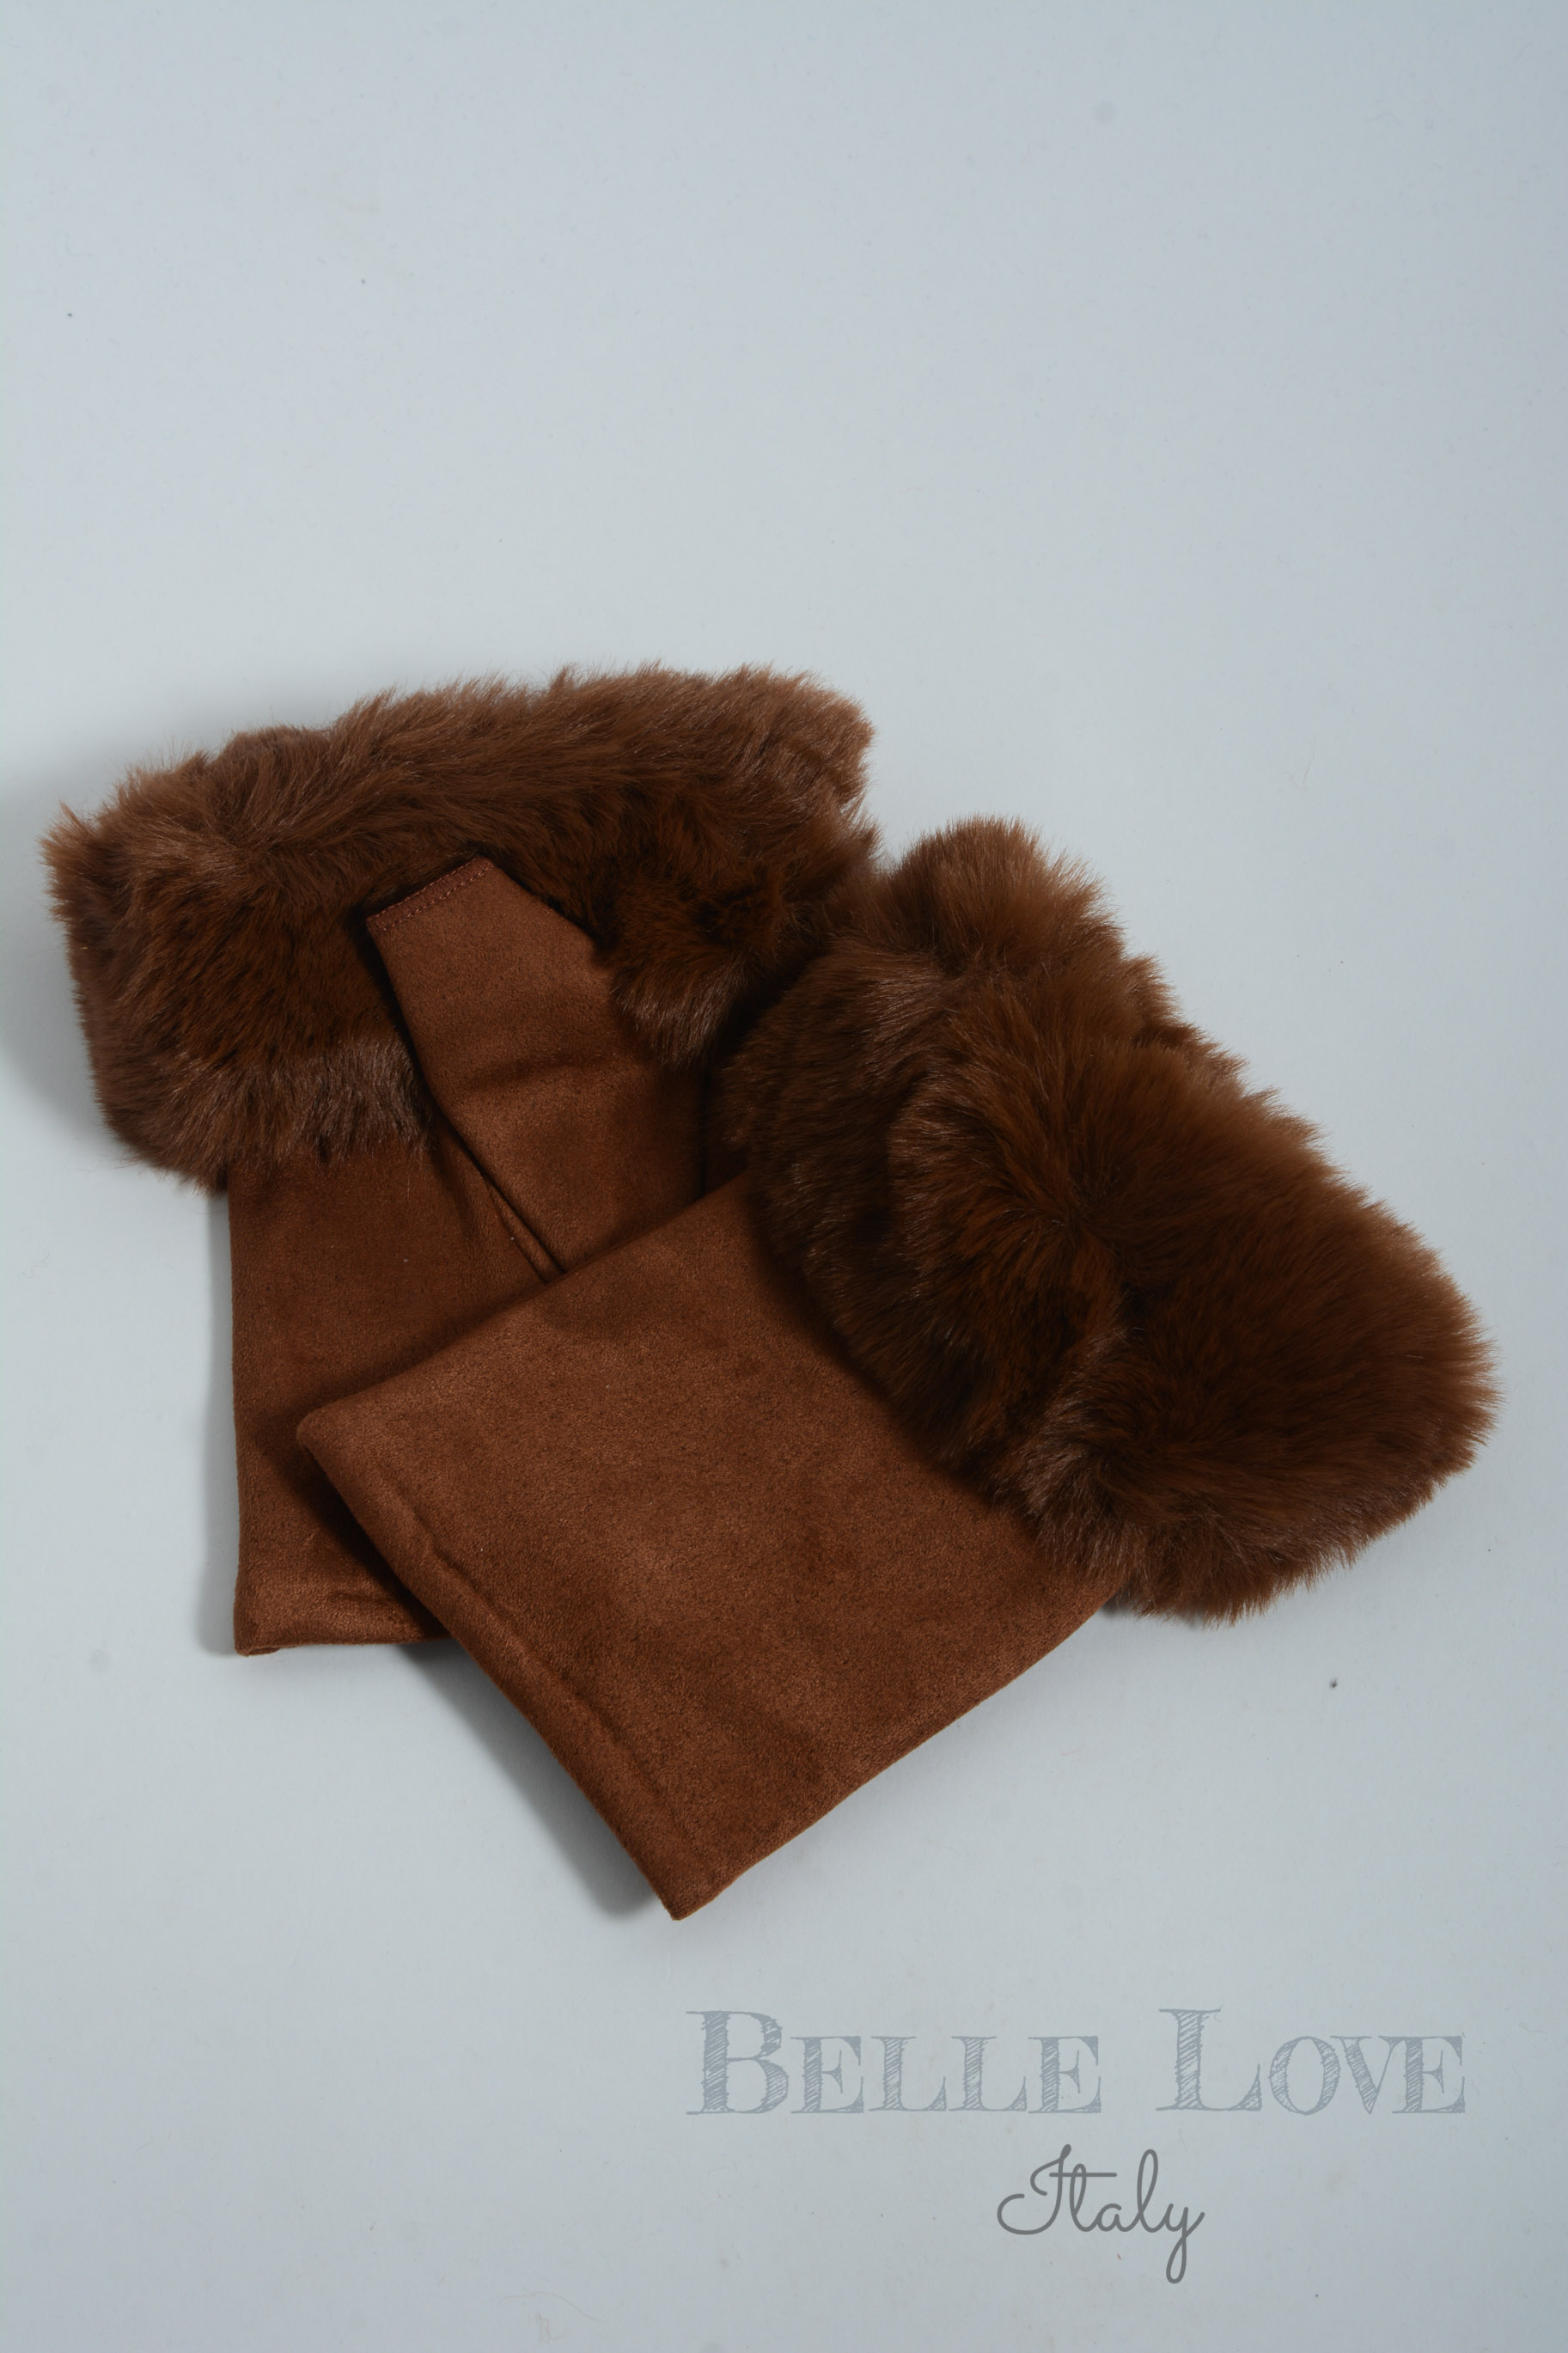 Belle Love Italy Evie Fingerless Suede Faux Fur Gloves